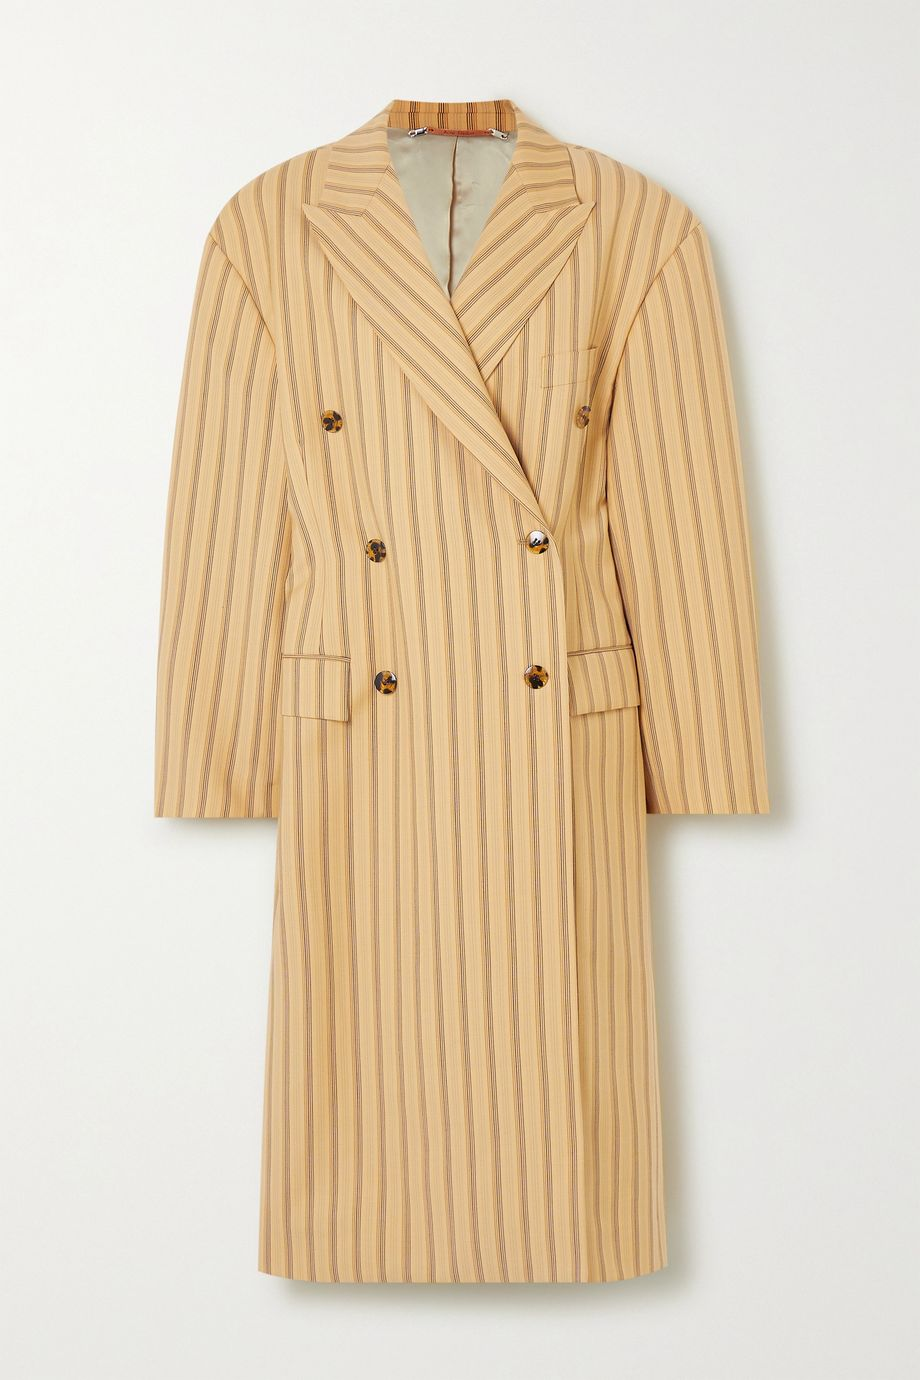 Acne Studios Oversized pinstriped grain de poudre wool coat